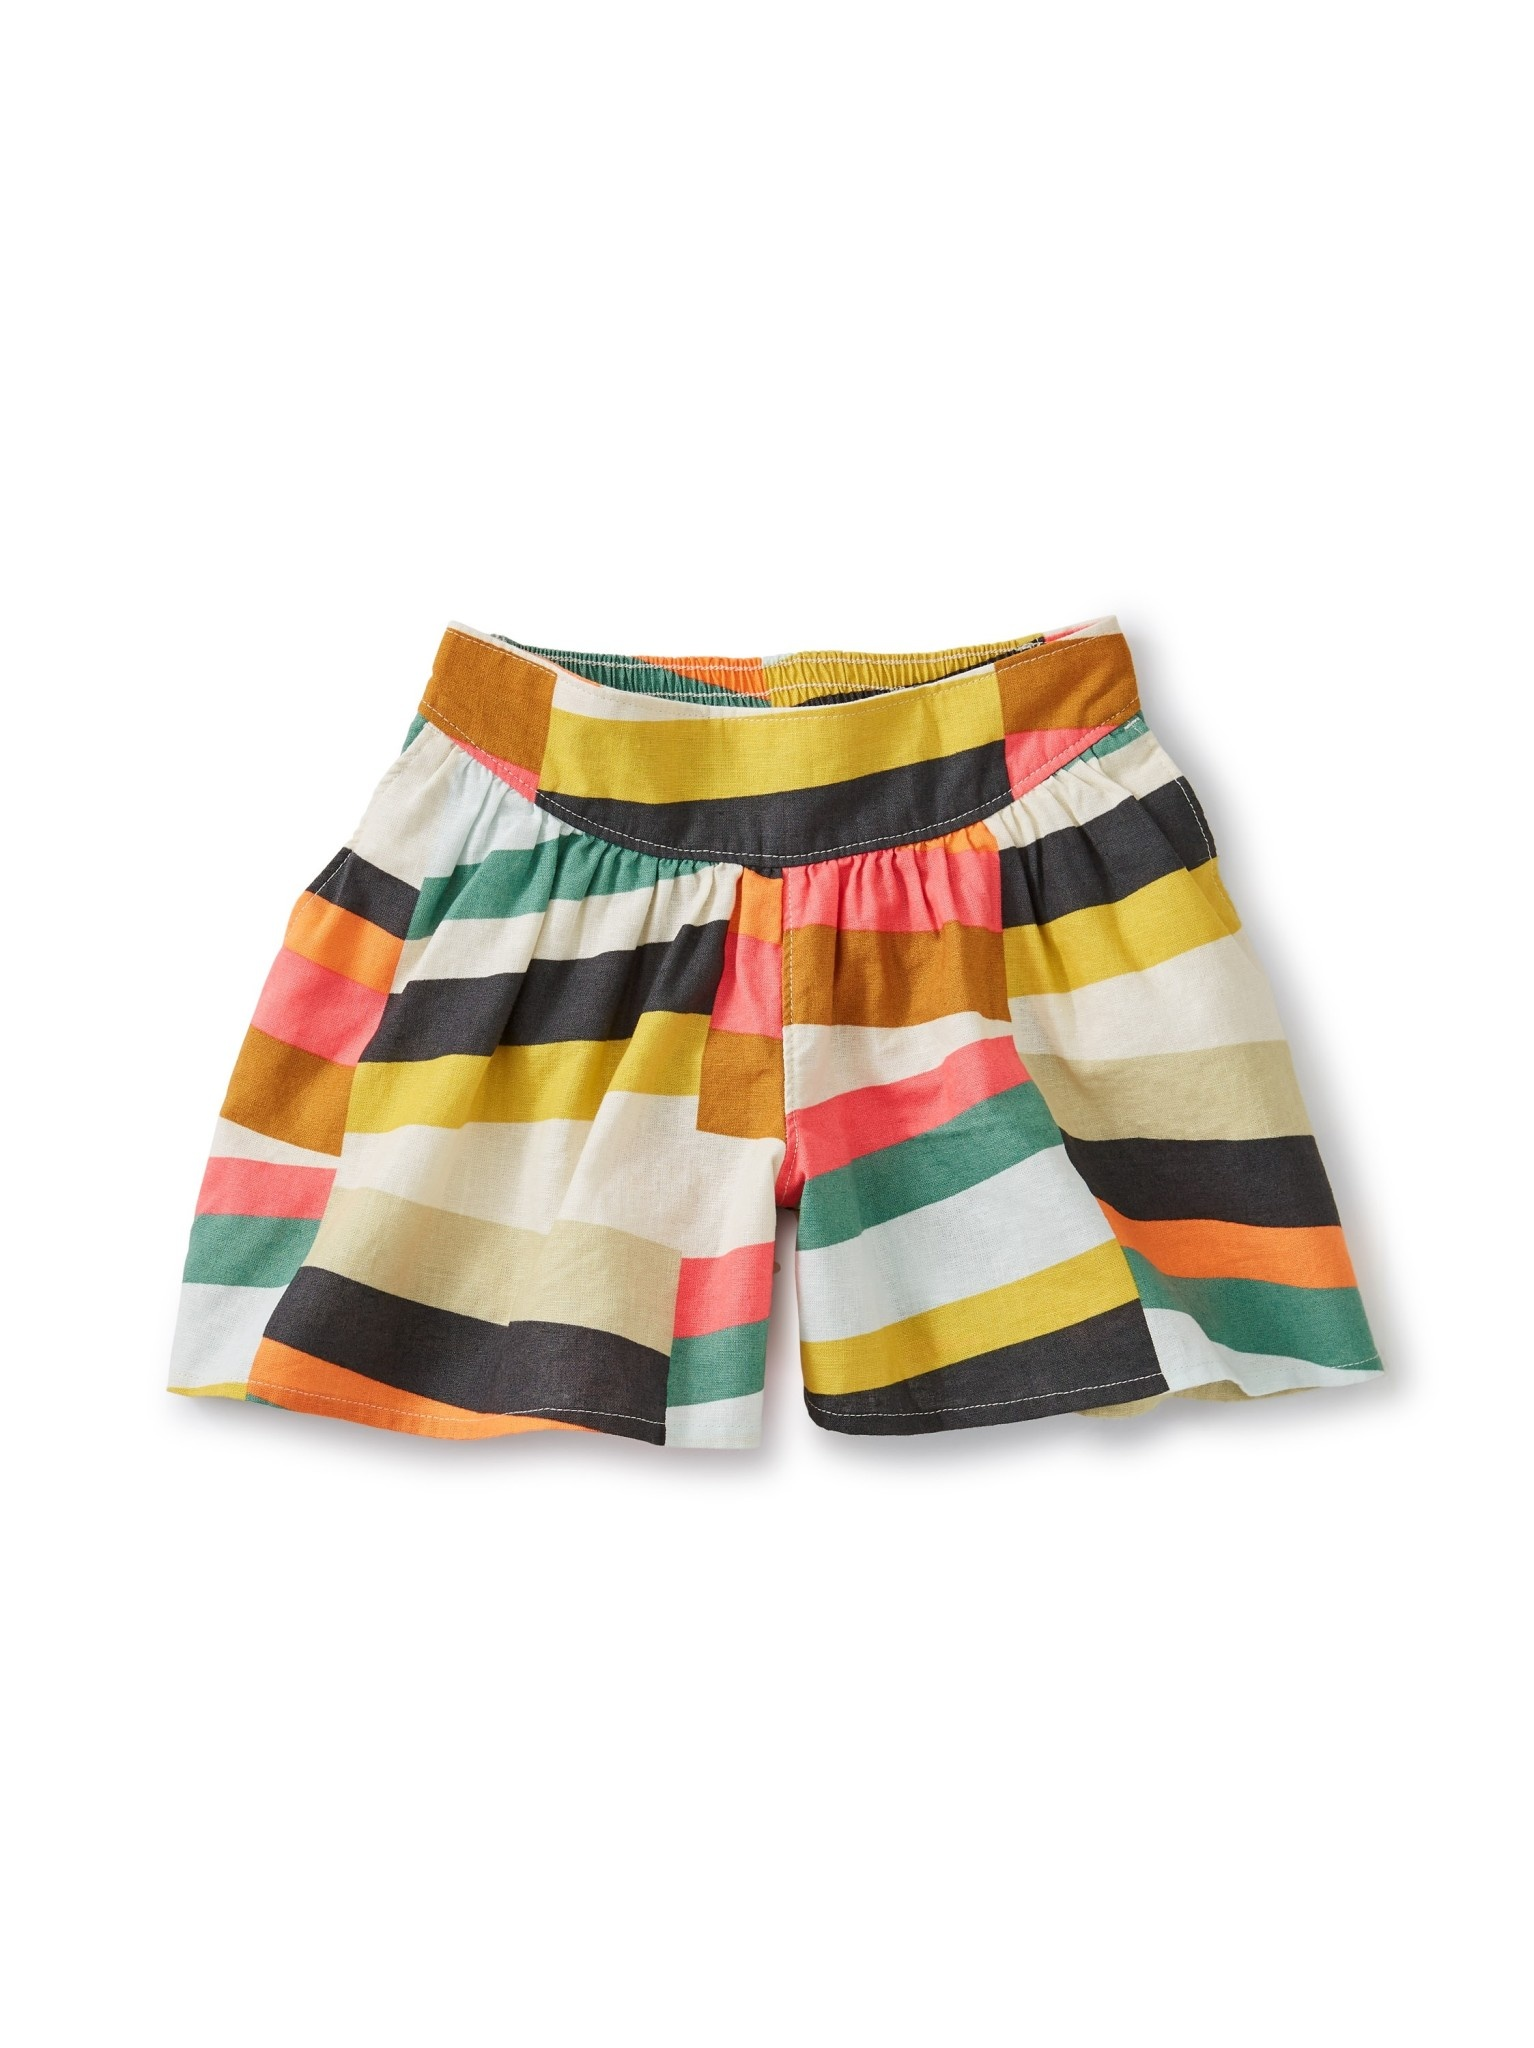 Tea Collection Rug Chevron Patterned Culottes